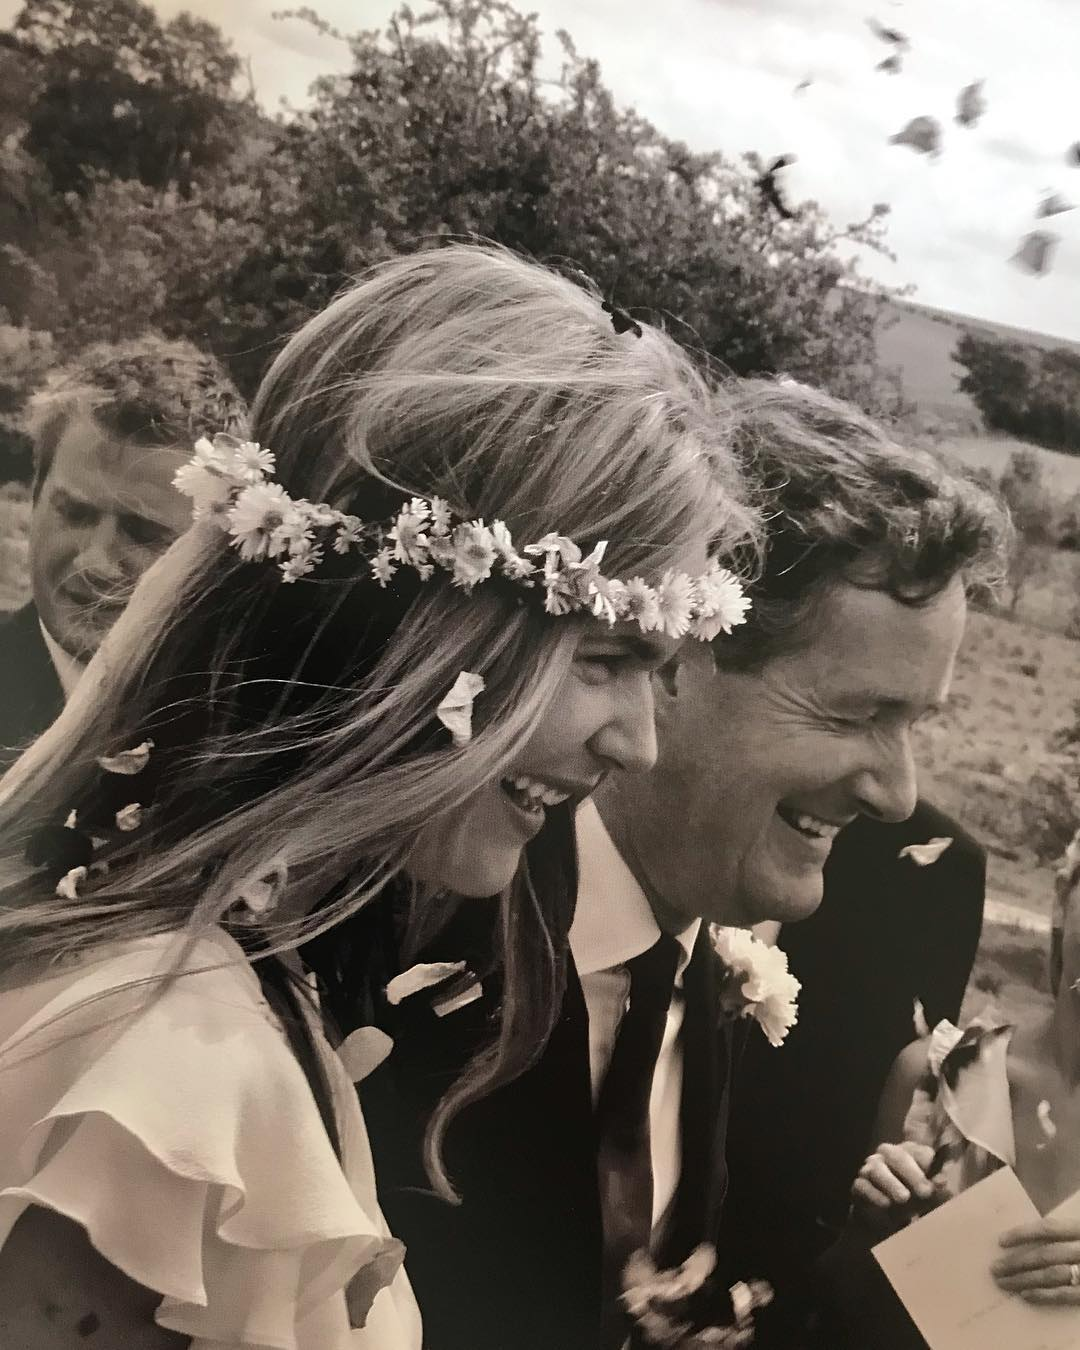 Celia Walden and Piers Morgan both giving big smiles on their wedding day